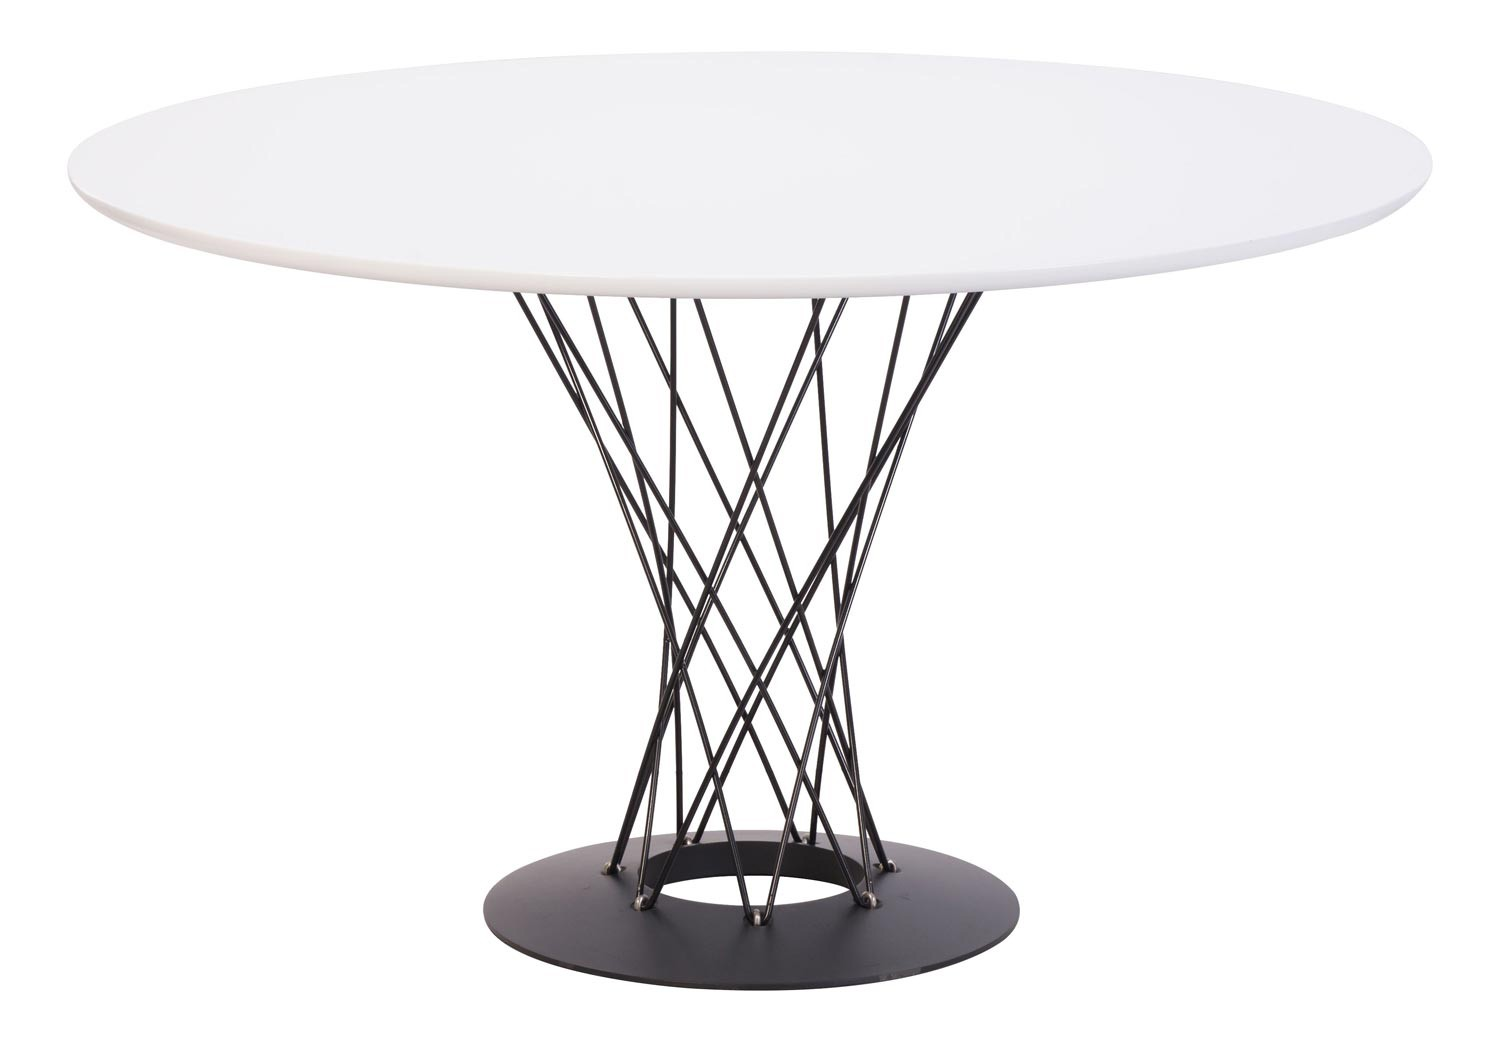 Zuo Modern Spiral Dining Table - White